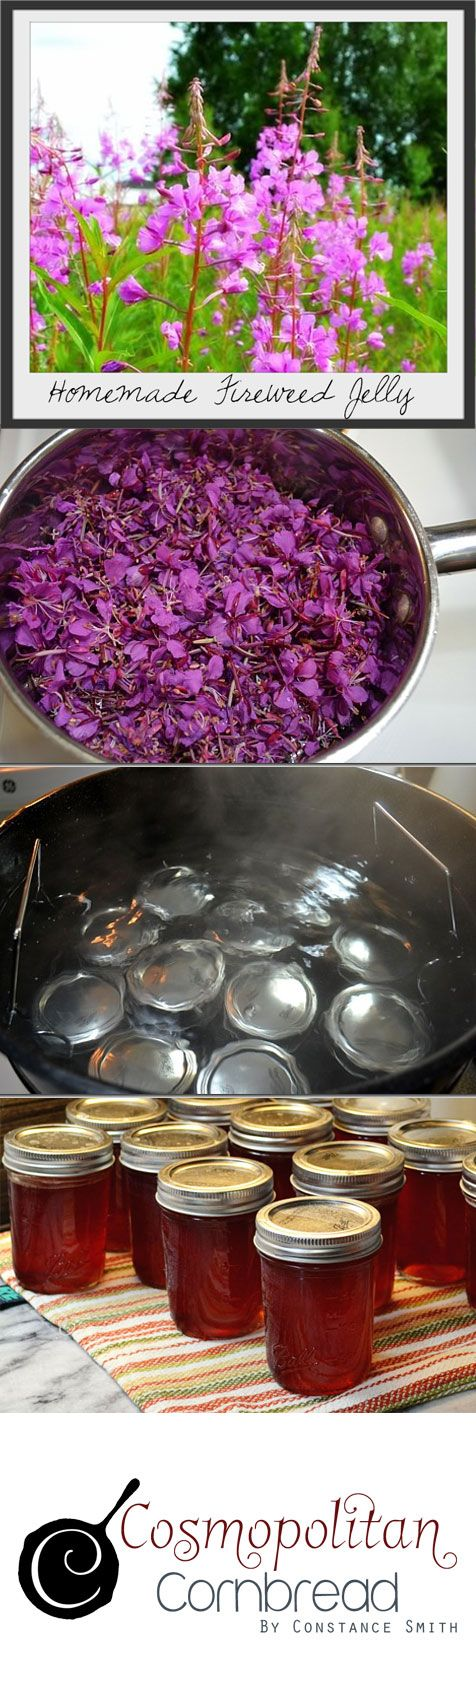 How to make homemade Fireweed Jelly from the beautiful wildflowers | Cosmopolitan Cornbread